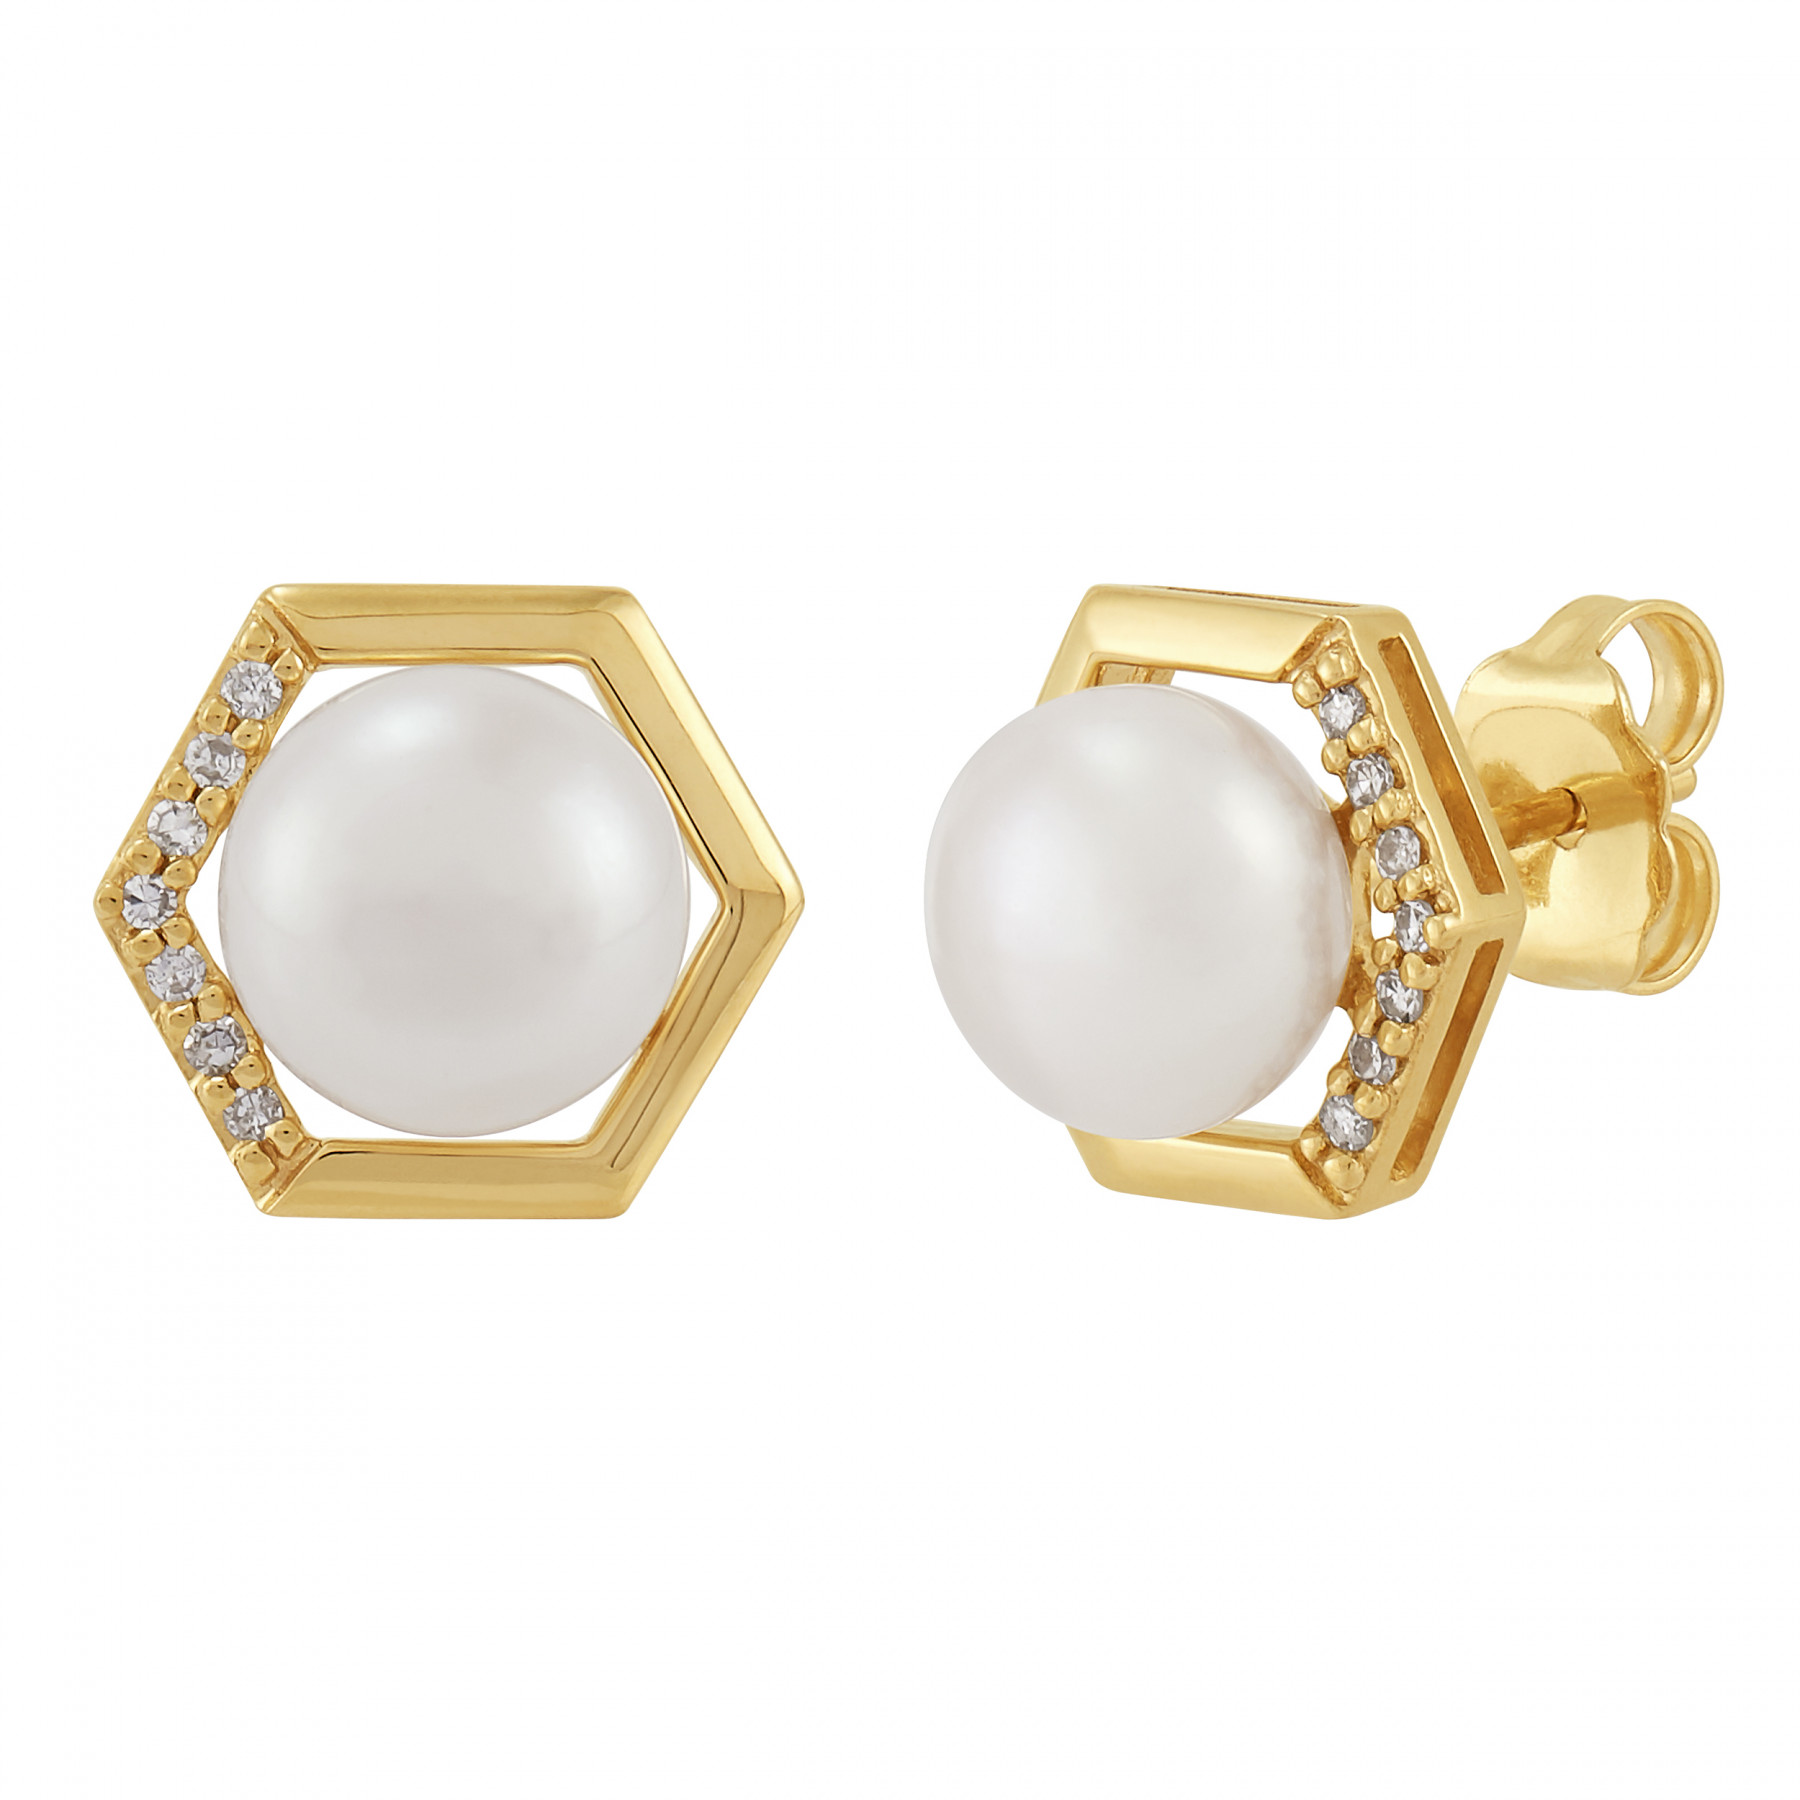 Honora Diamond and Pearl Studs in 14K Gold